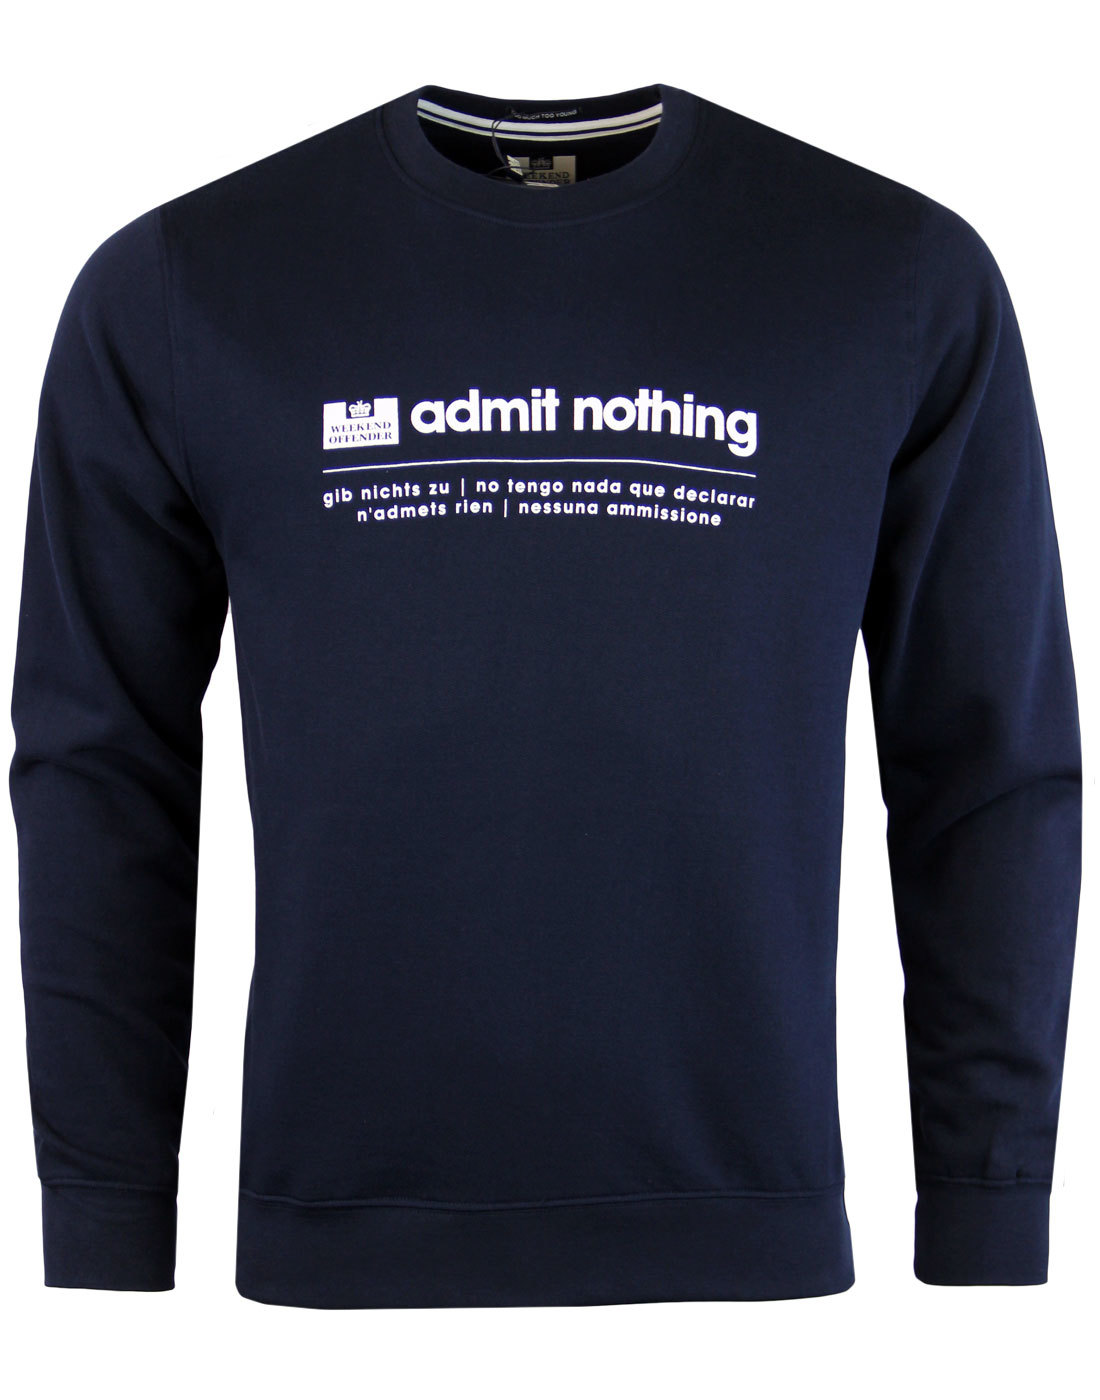 Polyglots WEEKEND OFFENDER Casuals Sweater